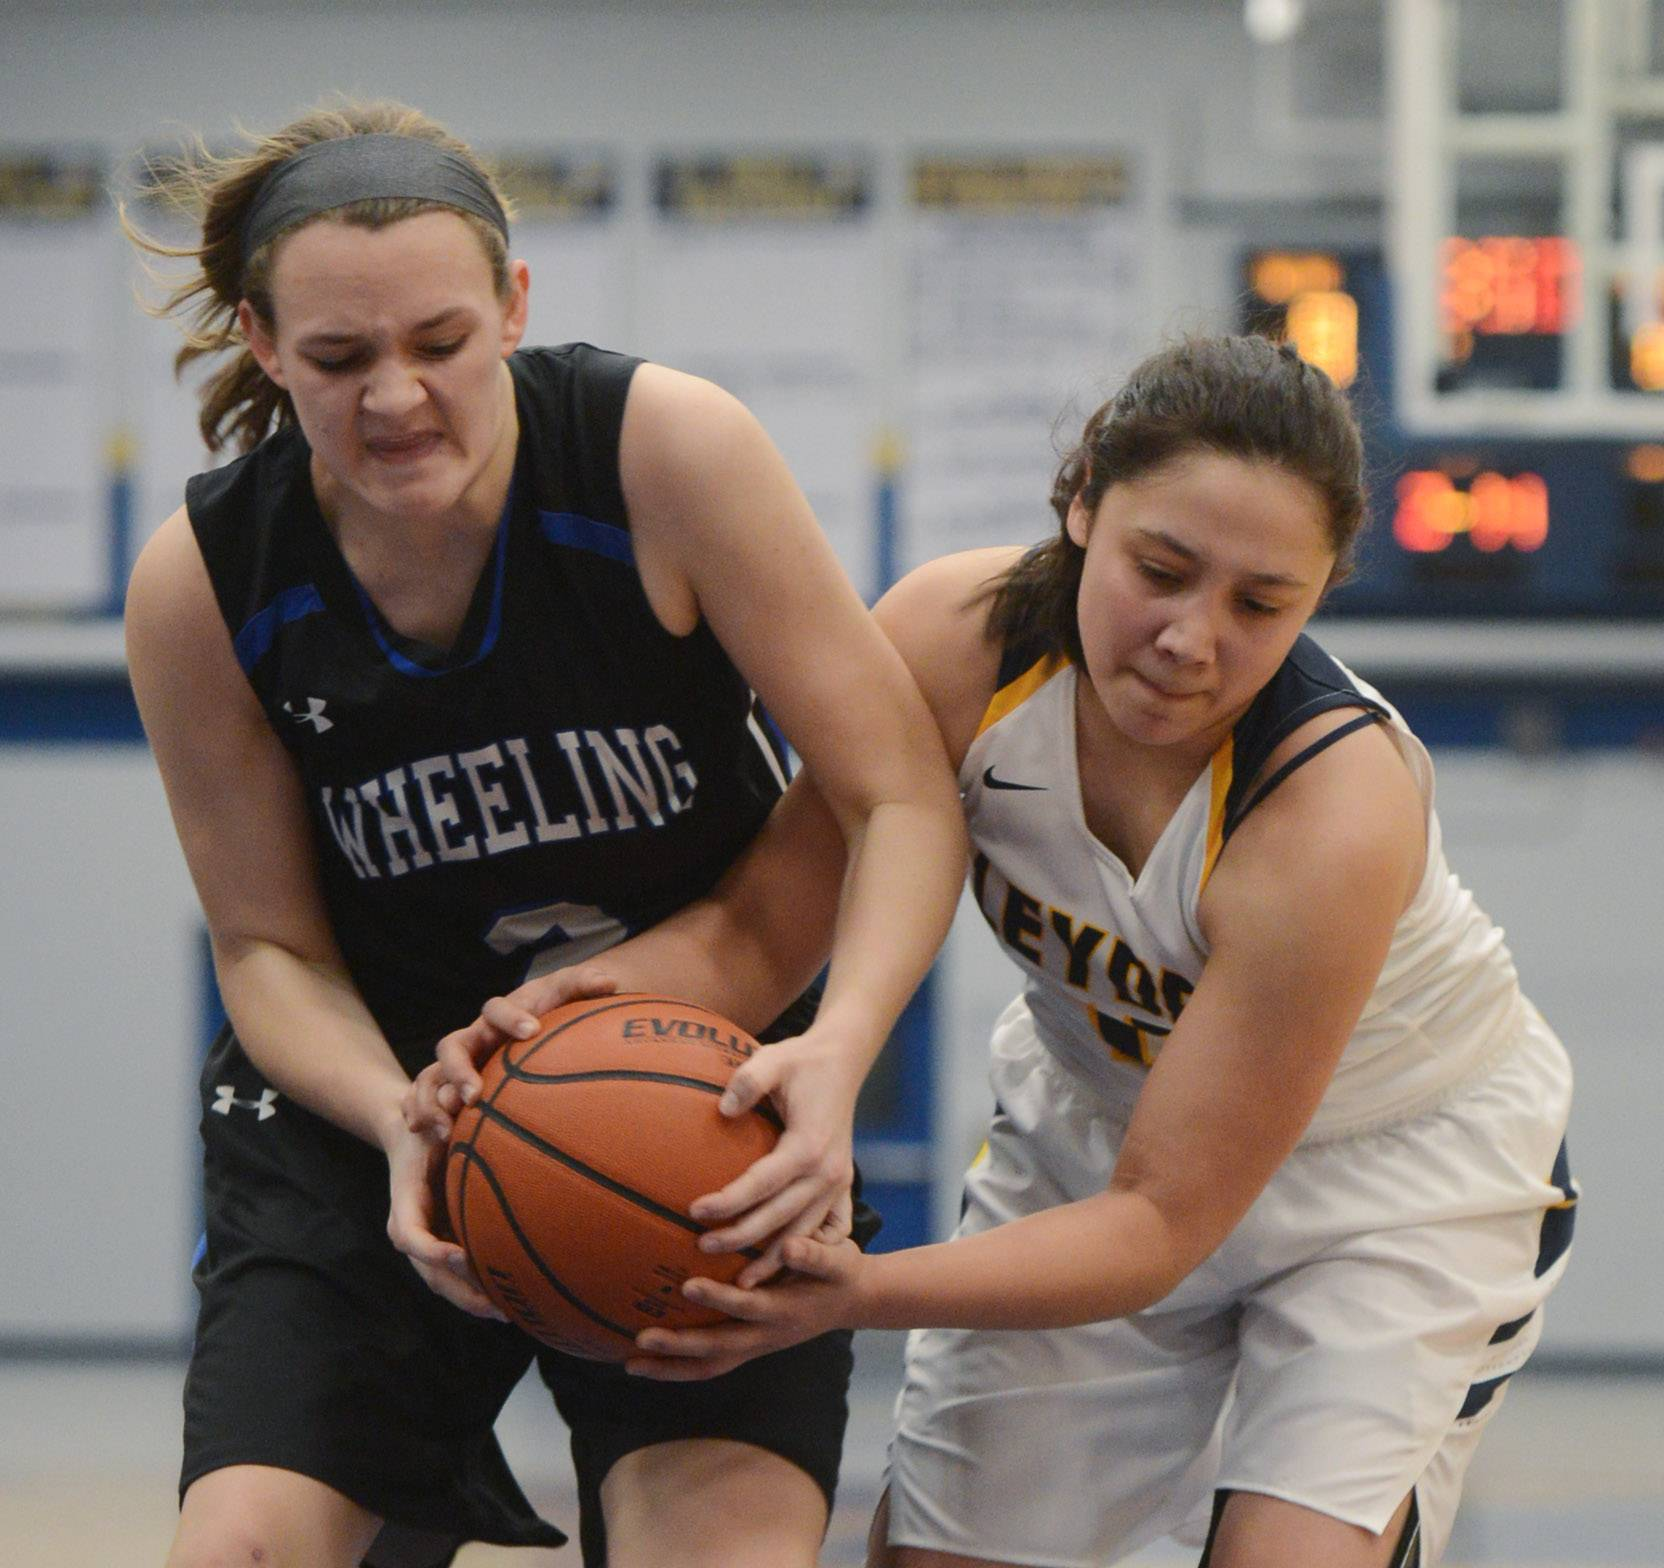 Wheeling's Morgan Collar, left, and Leyden's Alyssa Simi battle for the ball.